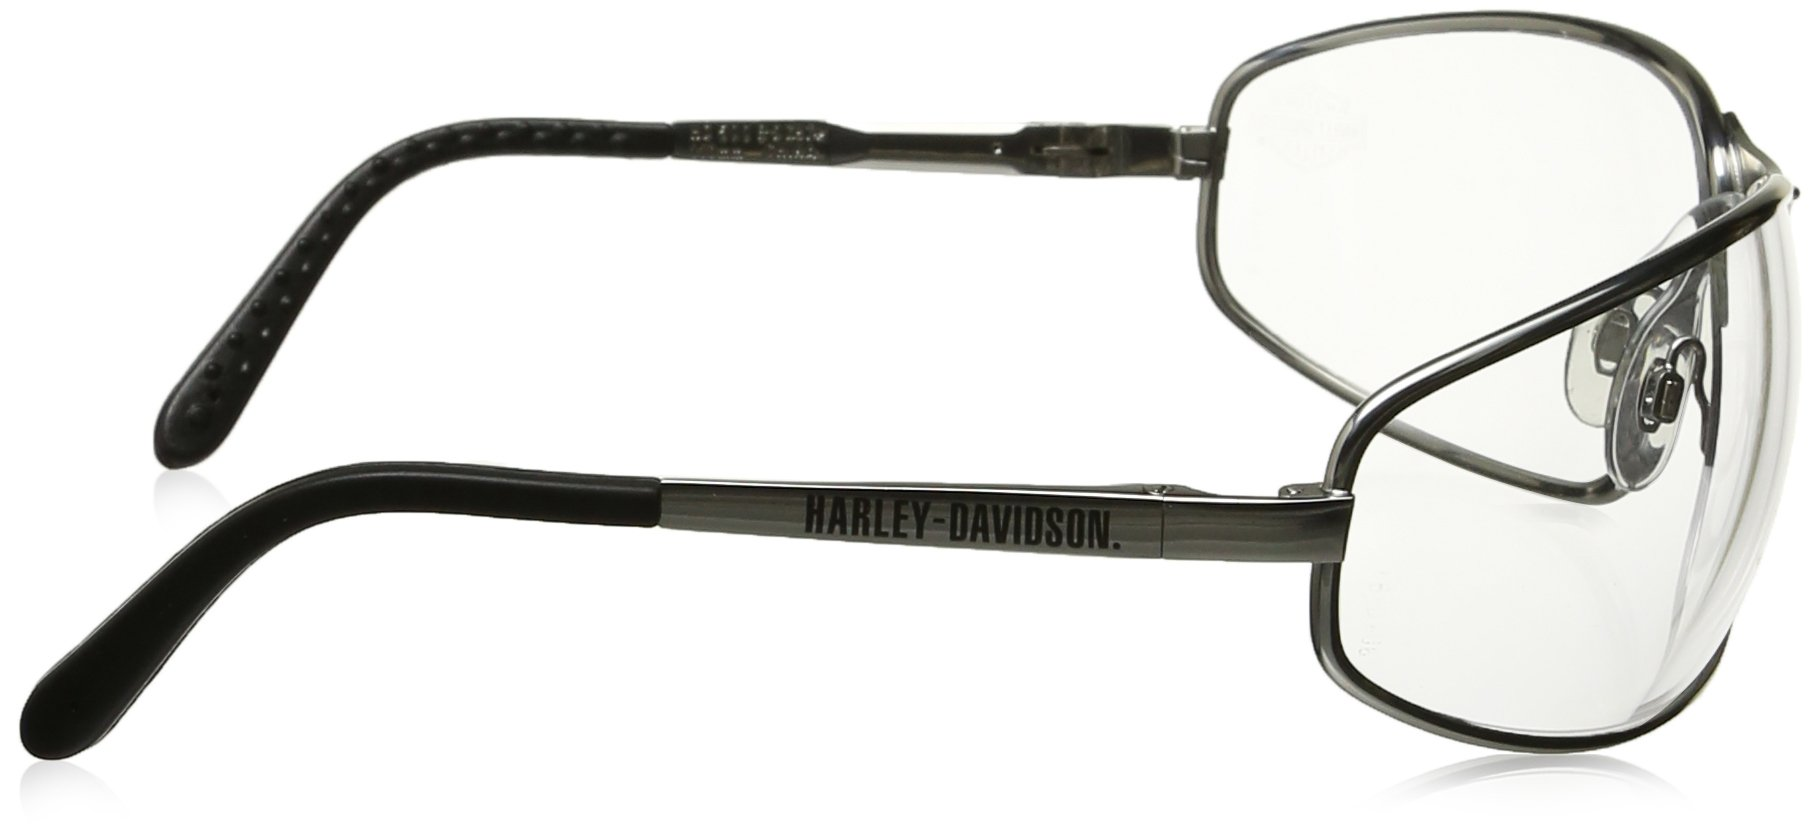 6dfce49cf5 Harley-Davidson HD501 Safety Glasses with Silver Matte Frame and ...